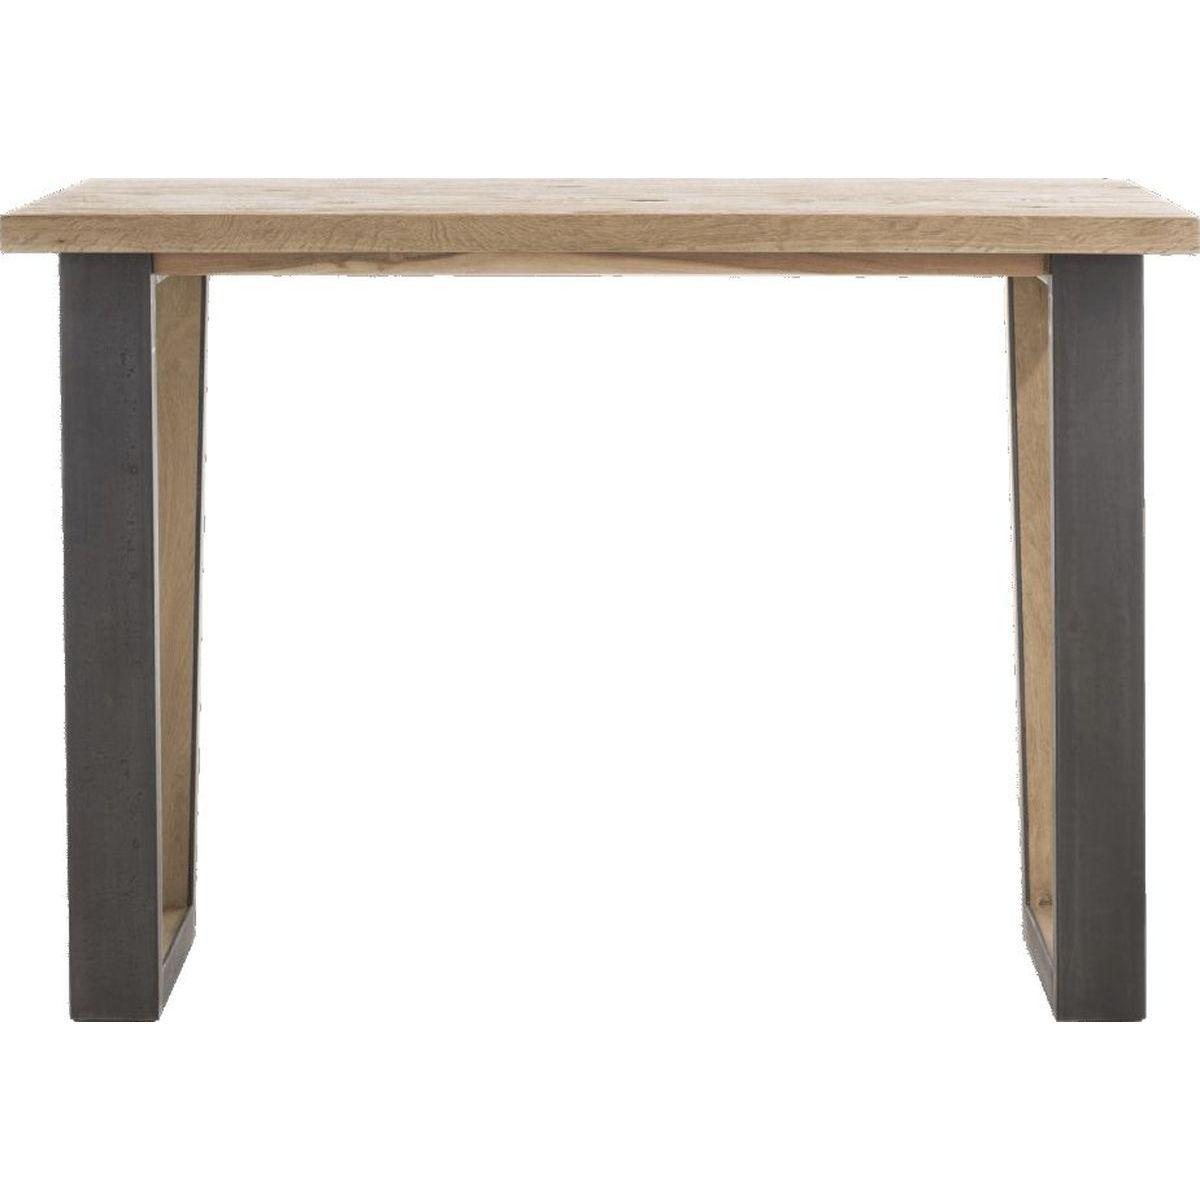 Table de bar METALOX HetH 130x90cm